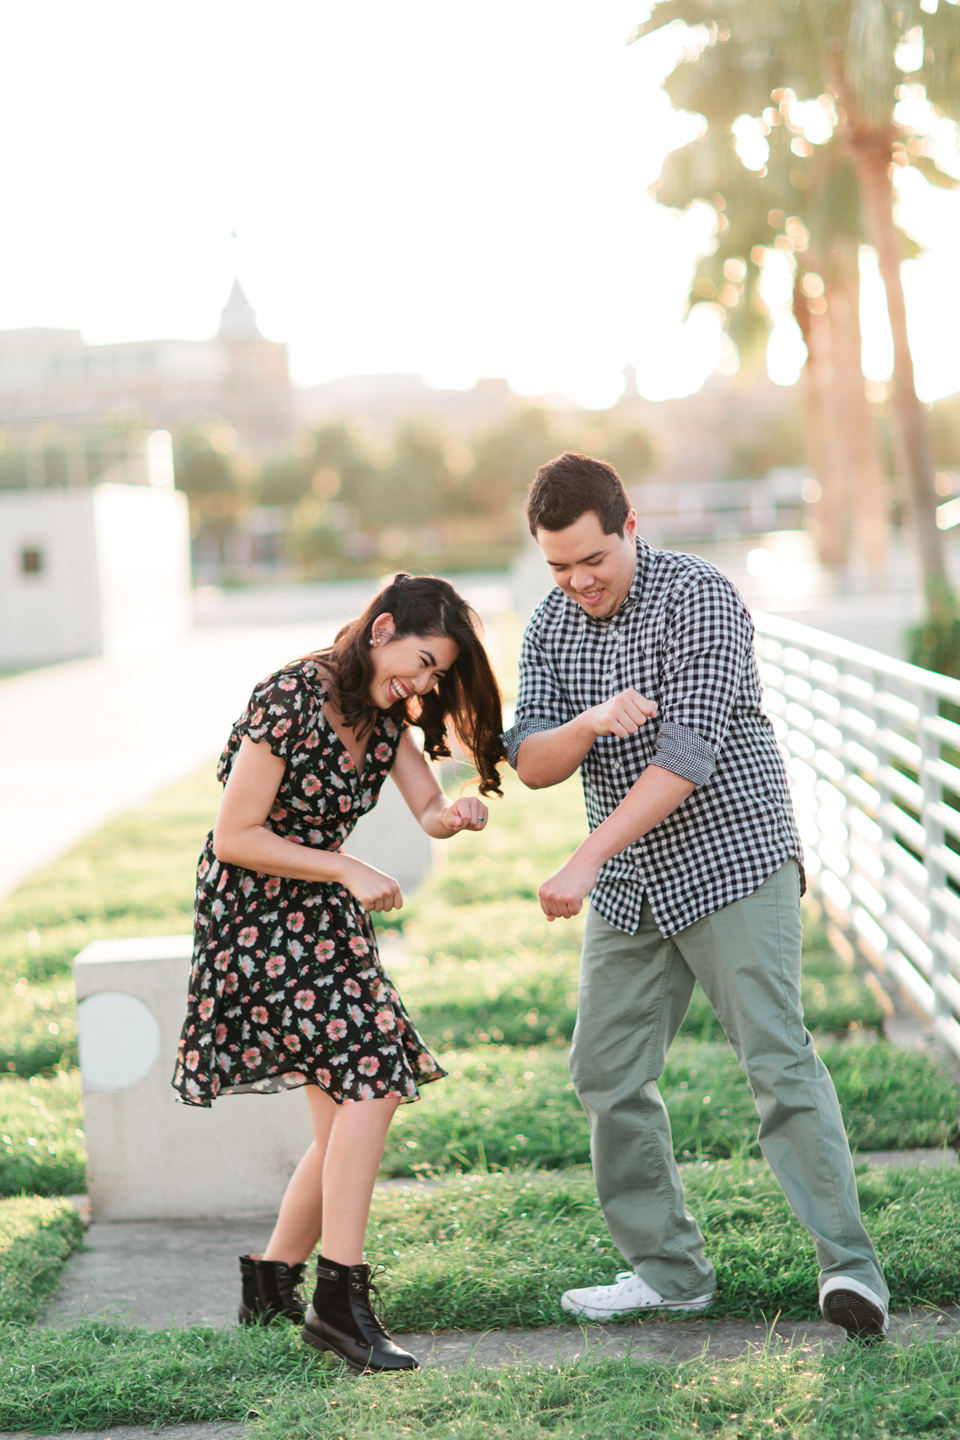 Picture of a cute couple dancing at Curtis Hixon Waterfront Park in downtown Tampa, Florida.  This is an engagement portrait.